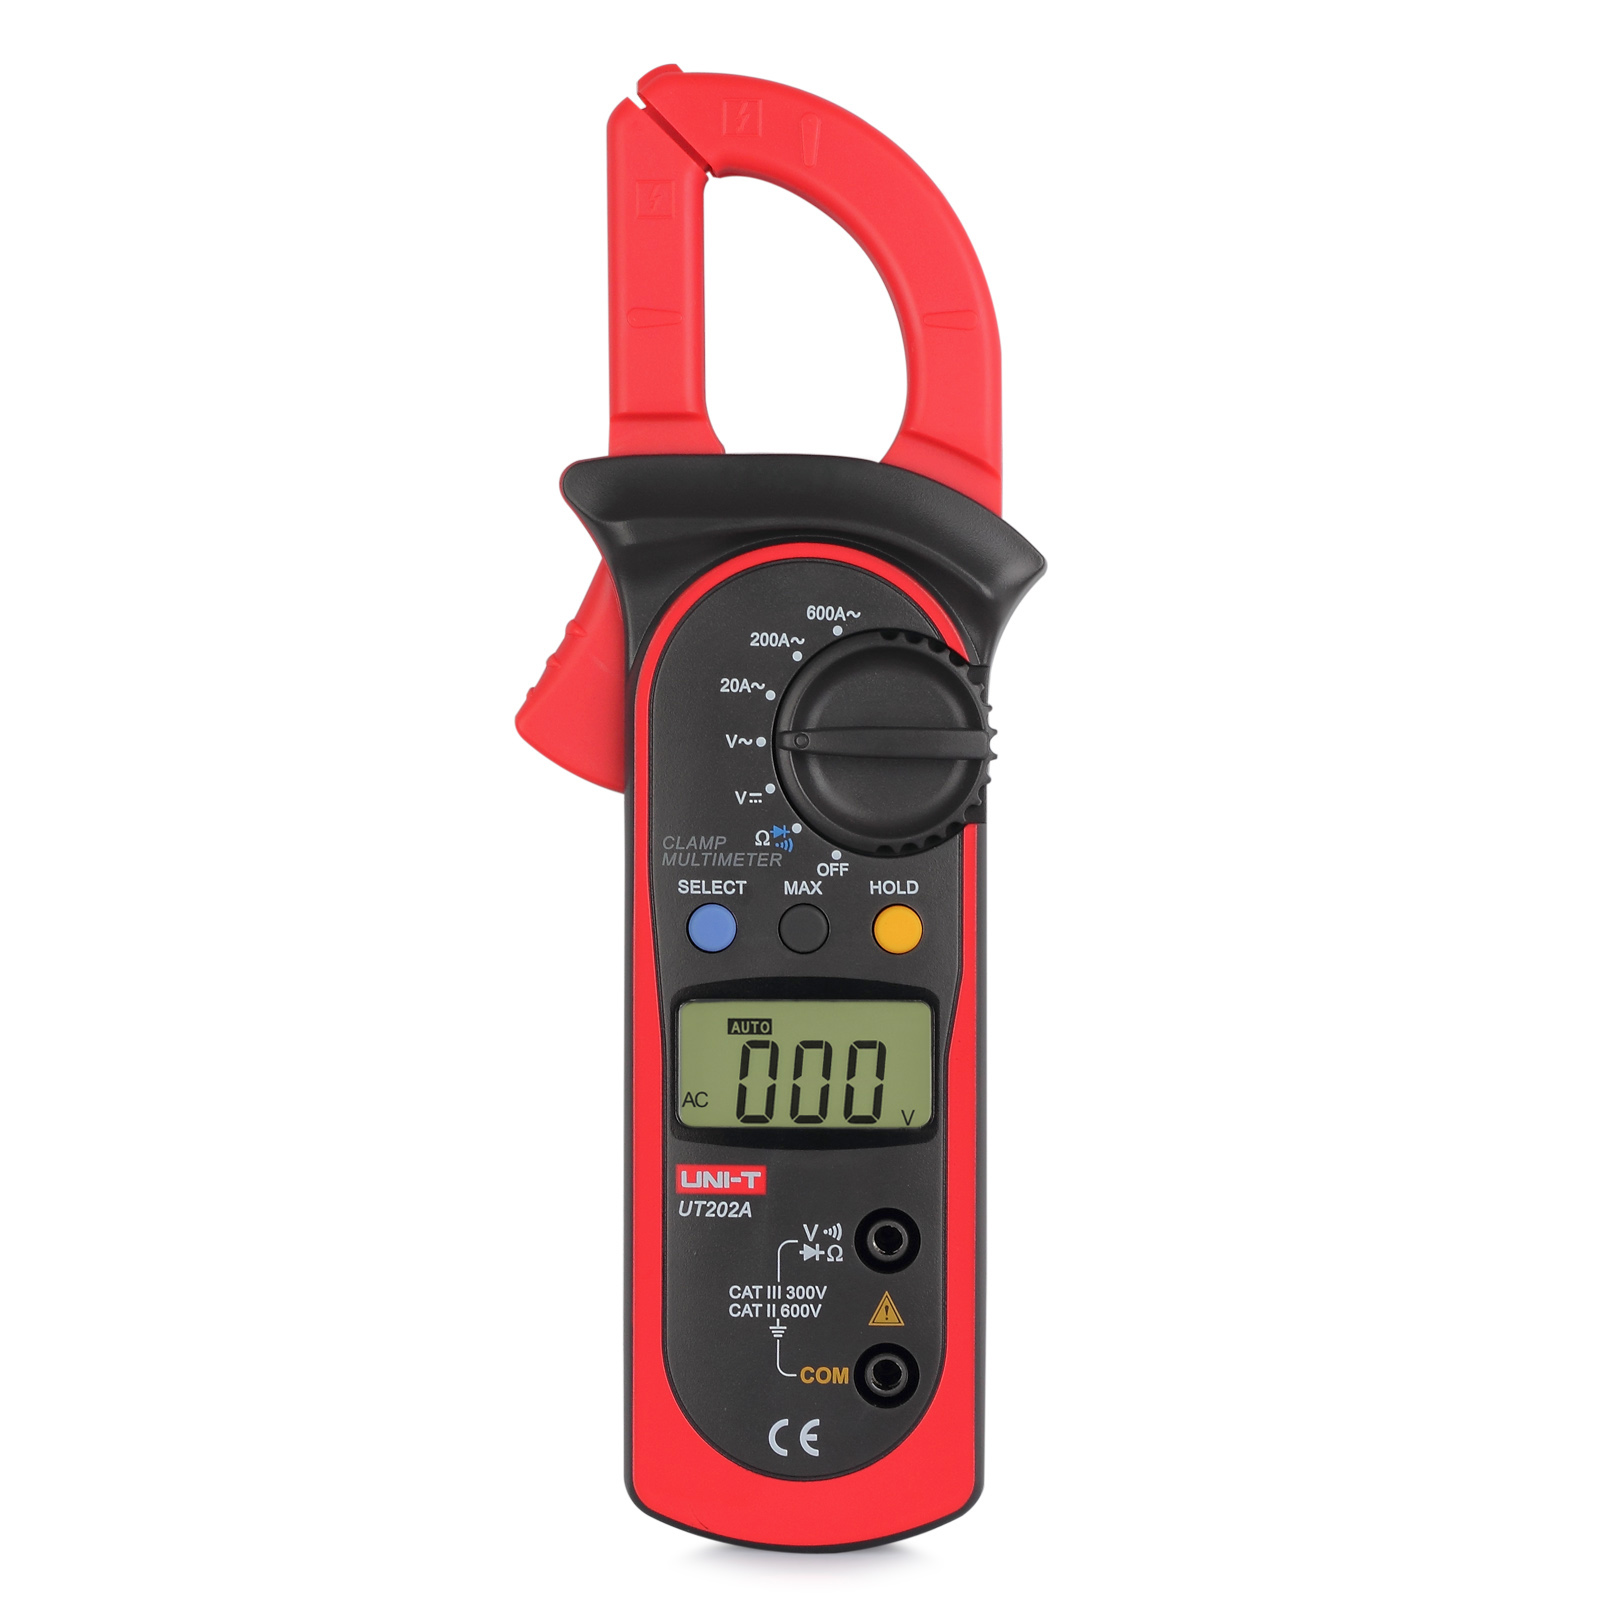 digital zangenmultimeter acdc lcd stromzange multimeter. Black Bedroom Furniture Sets. Home Design Ideas